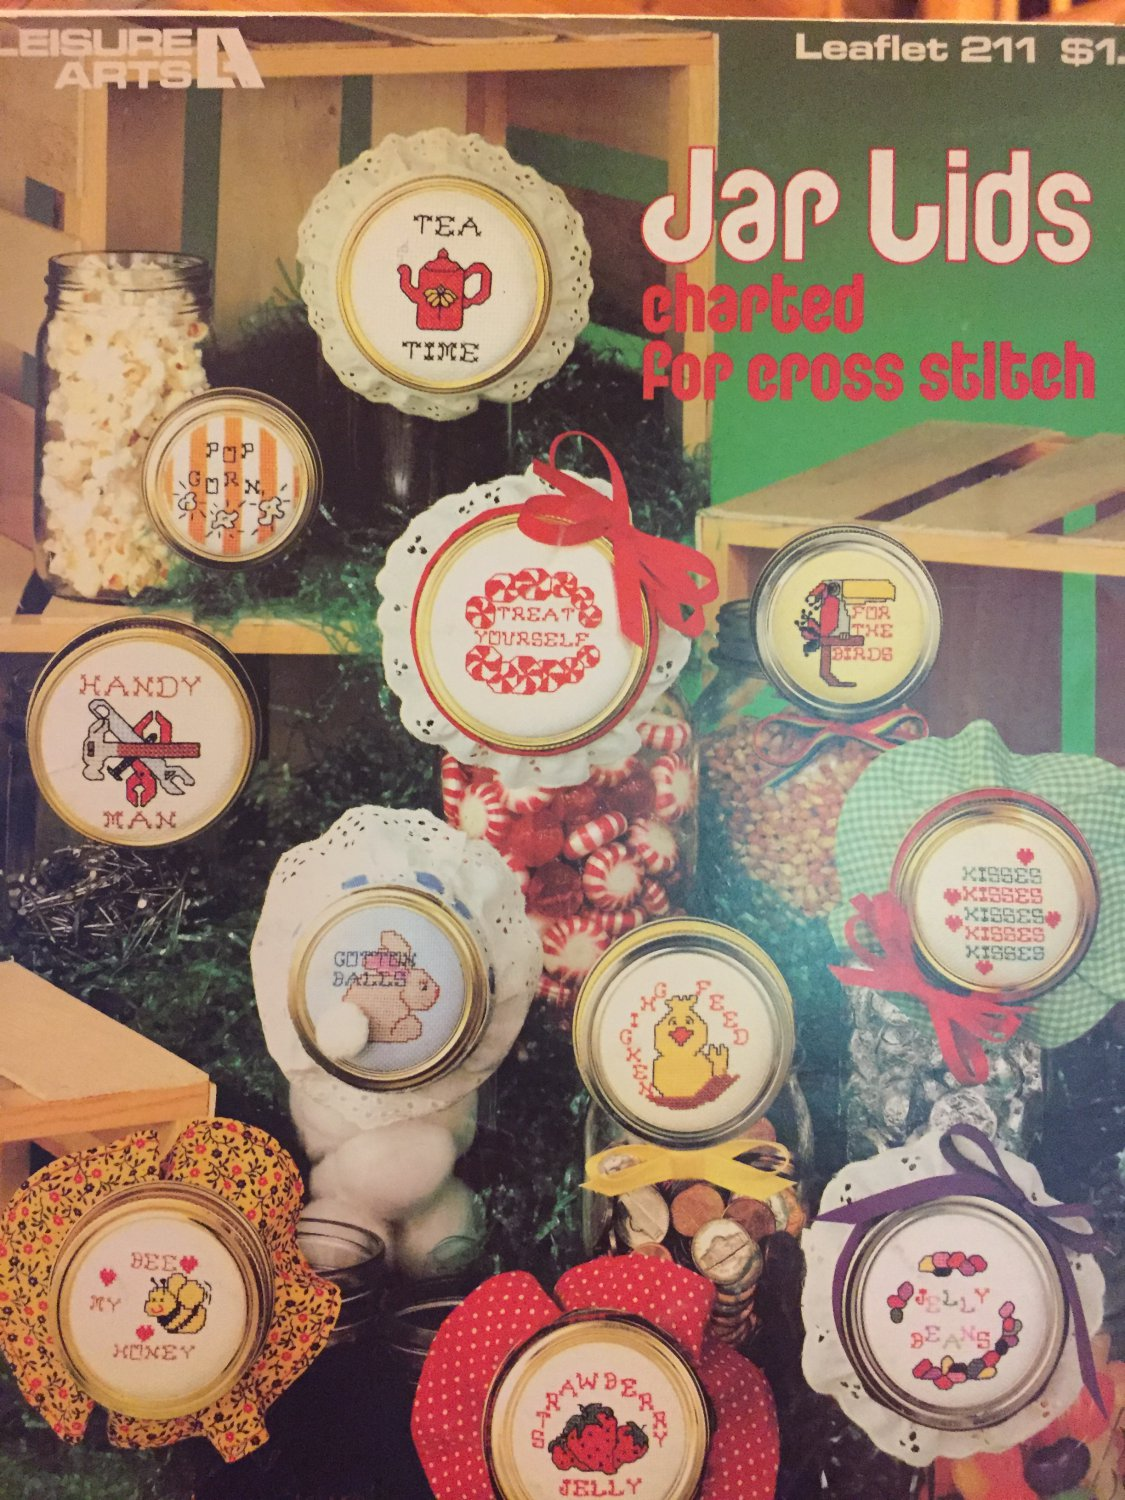 Leisure Arts leaflet 211 Jar Lids for counted cross stitch